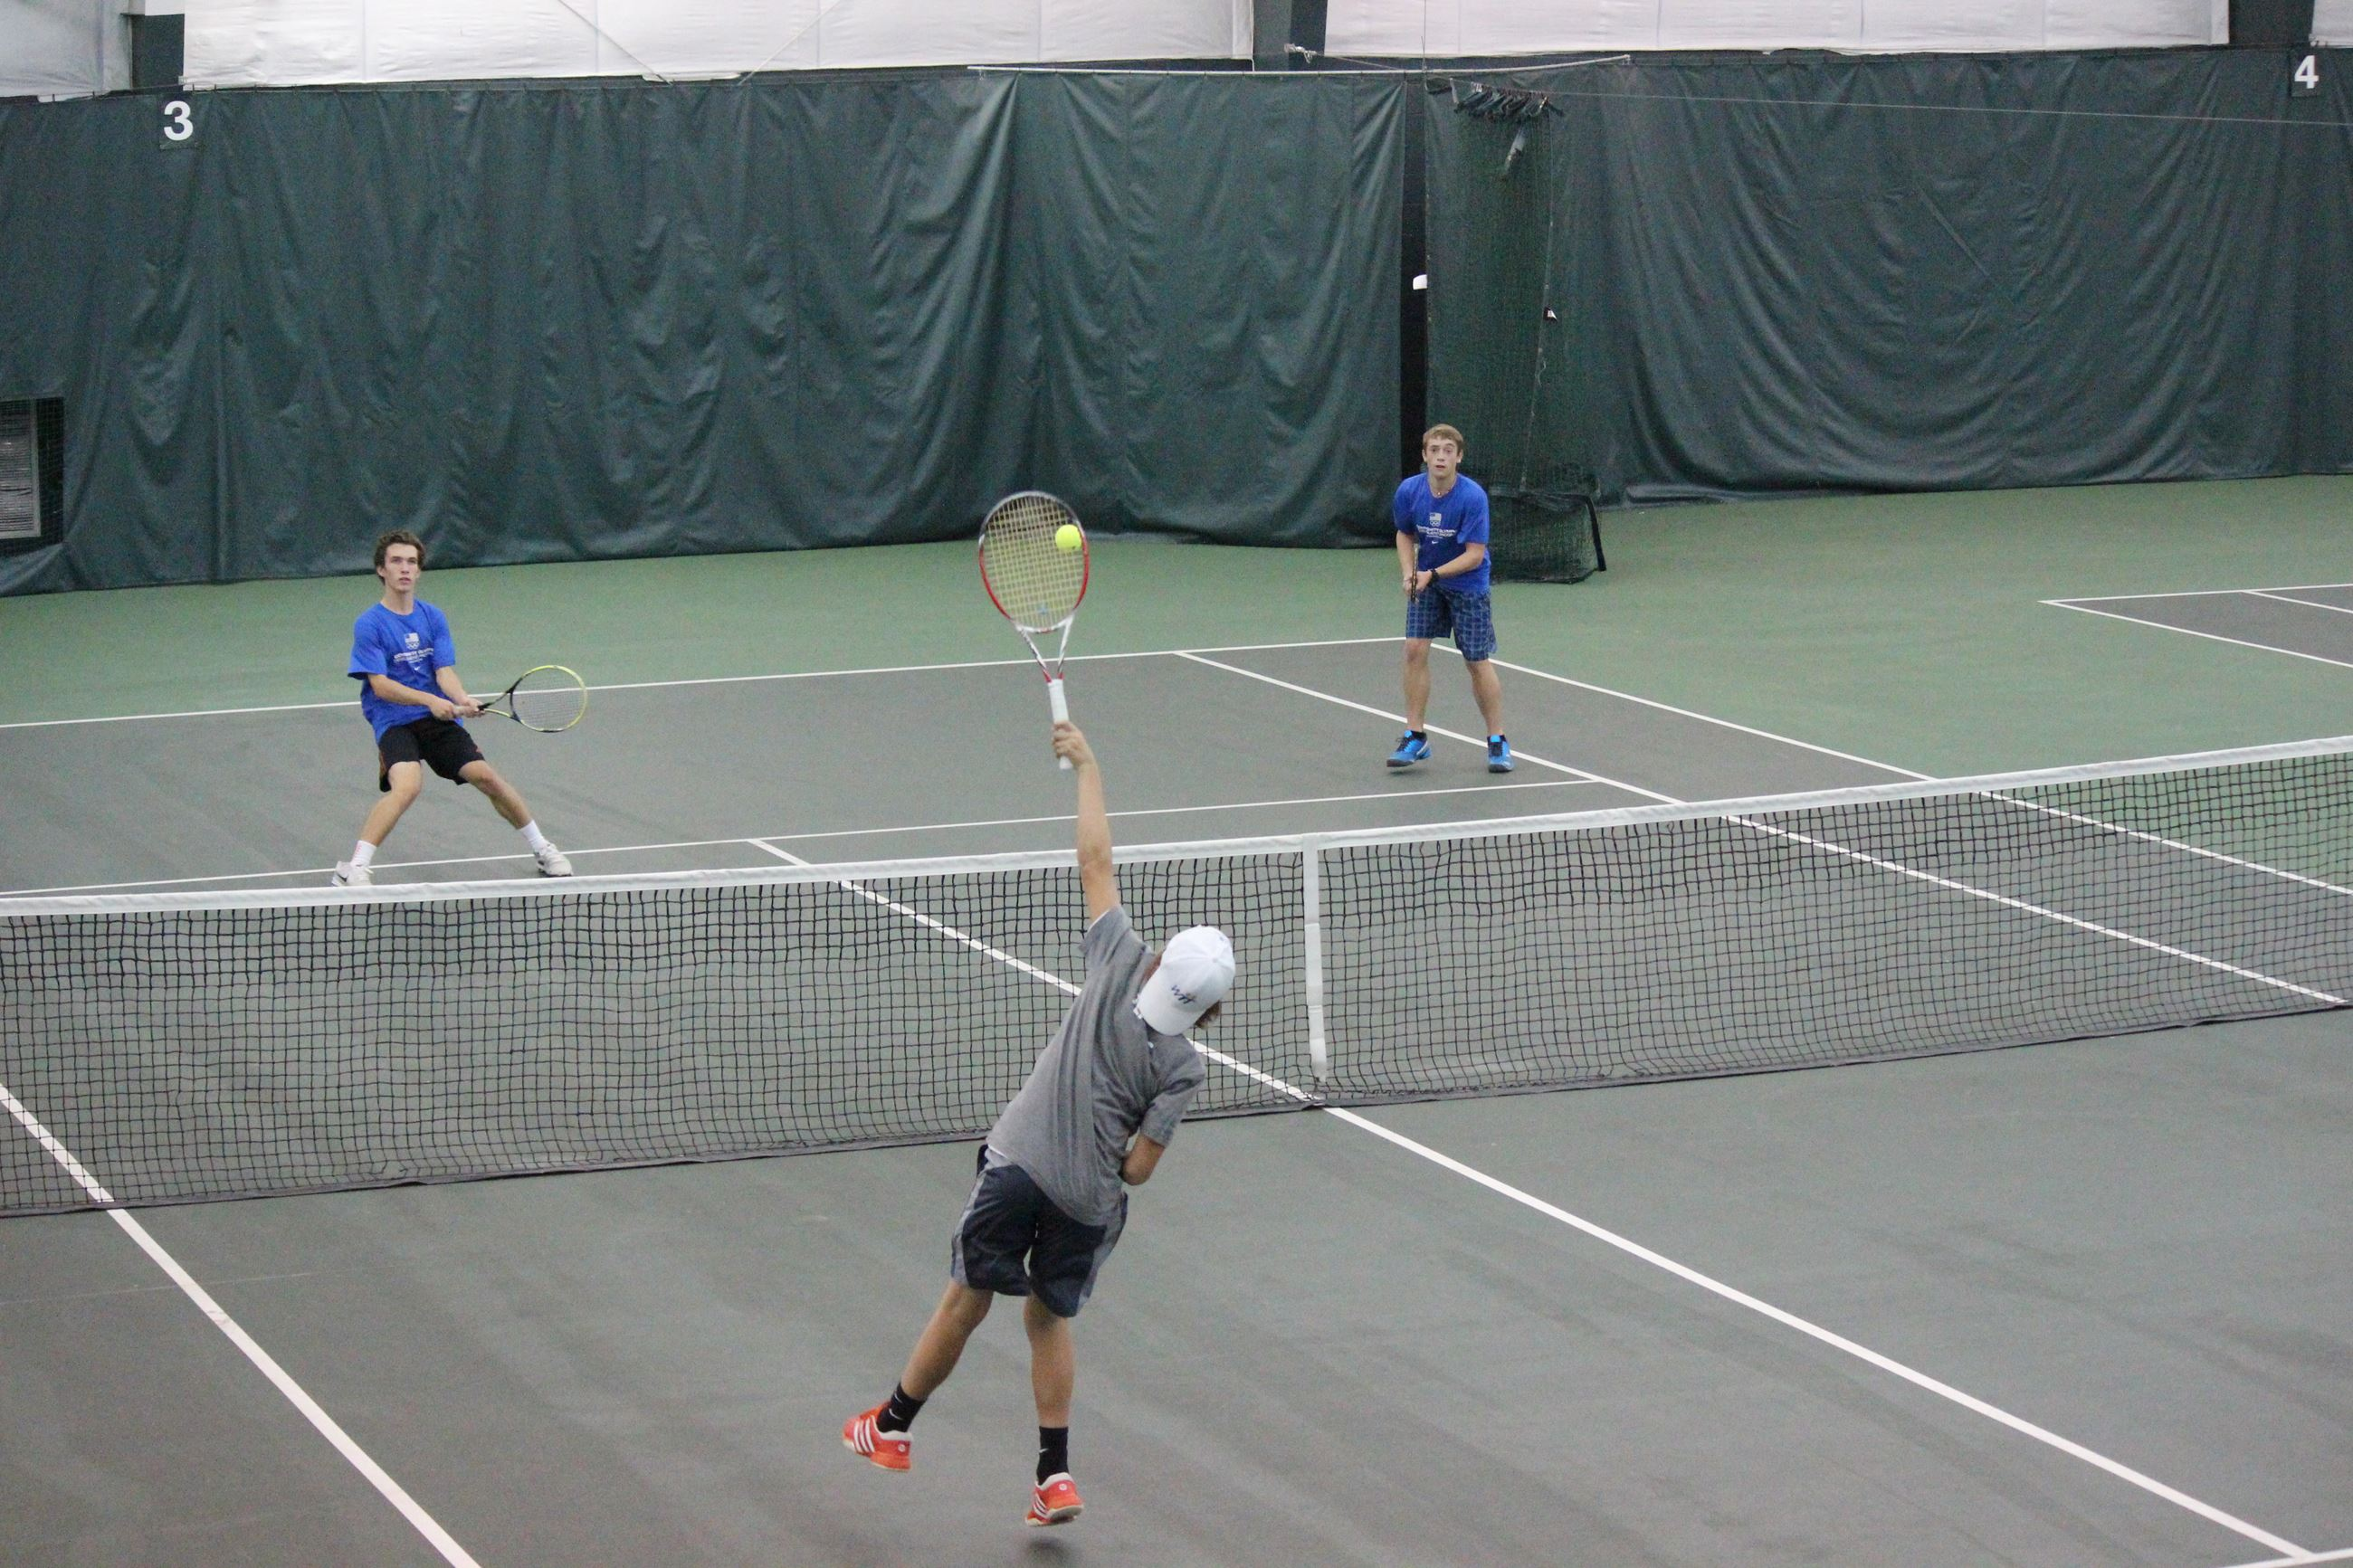 Indoor Tennis youth players